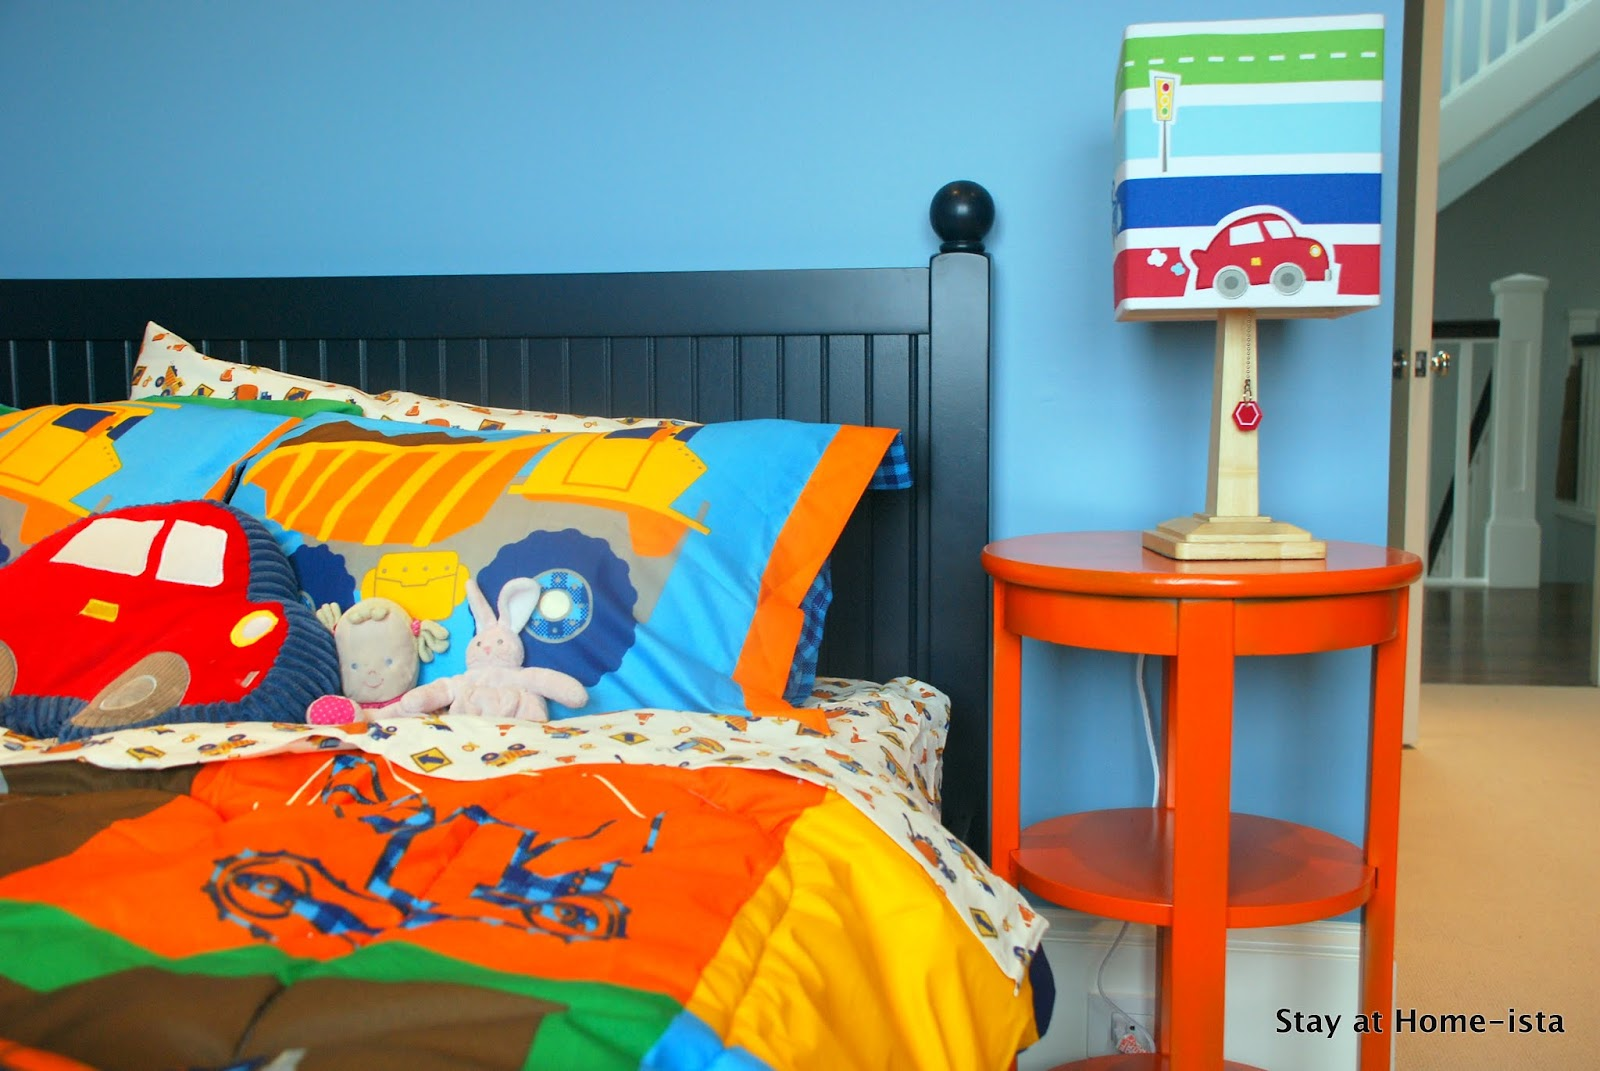 Stay at Home-ista: Construction Truck Bedding Boys Construction Bedroom Decorating Ideas on boys bedroom painting ideas, toddler boy bedroom ideas, teen boys bedroom ideas, boys' bedroom paint color ideas, small bedroom paint color ideas, cool little boys room ideas, cool boys bedroom ideas, country sampler decorating ideas, small boys bedroom ideas, boys bedroom decor, rustic country decorating ideas, boys room paint ideas, boys spiderman bedroom ideas, boys bedroom themes and ideas, little boy bedroom ideas,